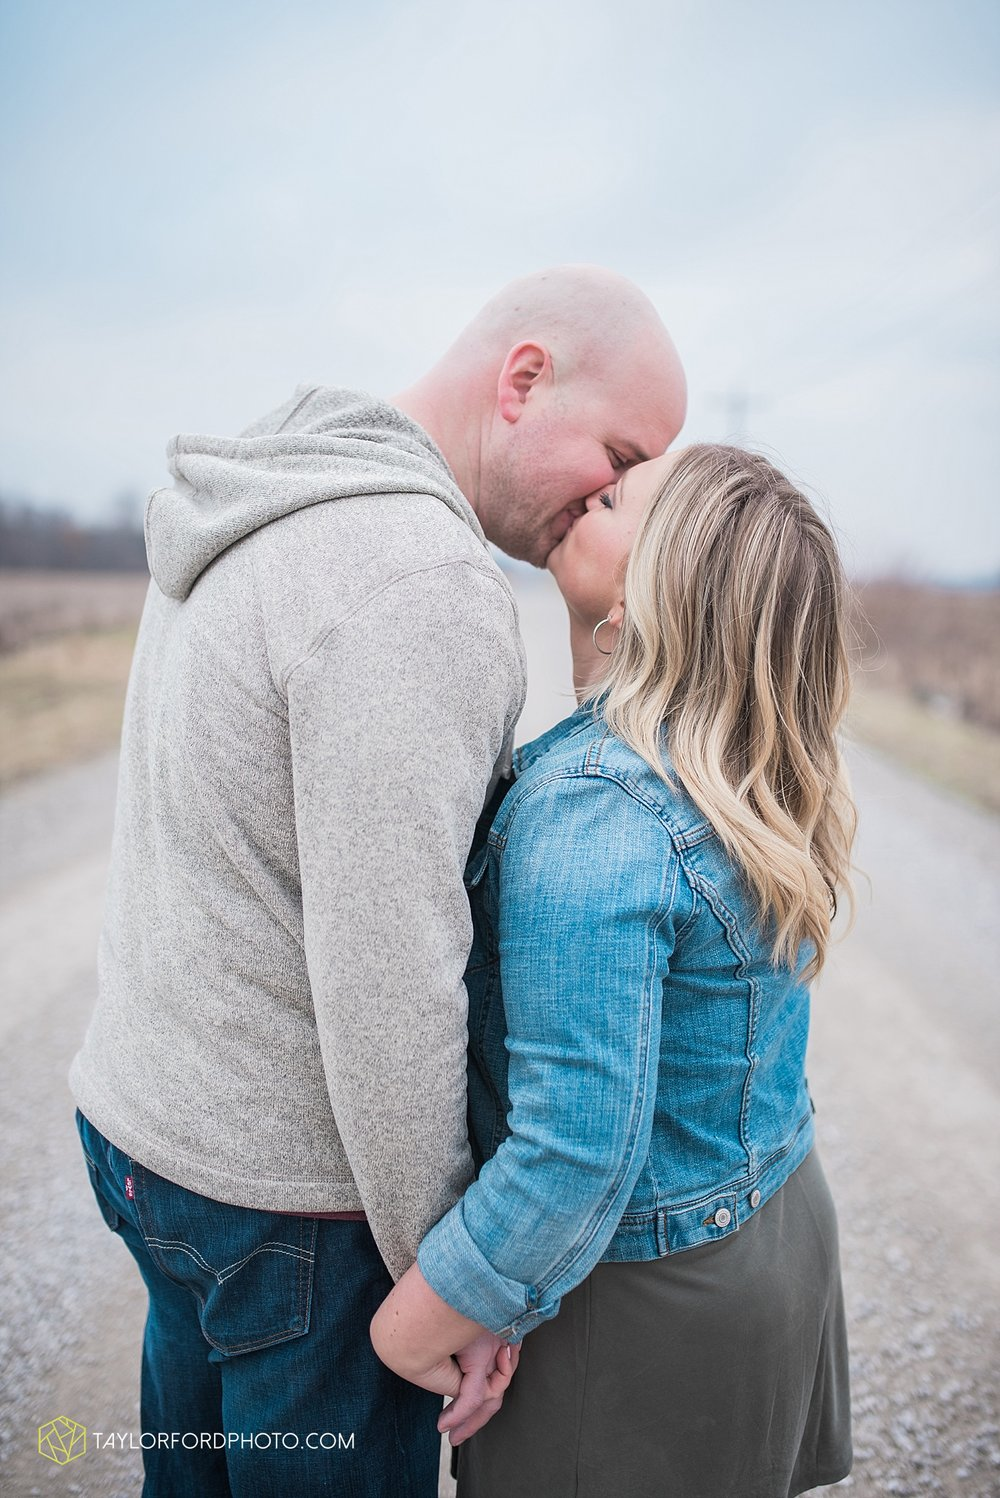 indianapolis_indiana_engagement_wedding_fort_wayne_indiana_taylor_ford_photography_1376.jpg